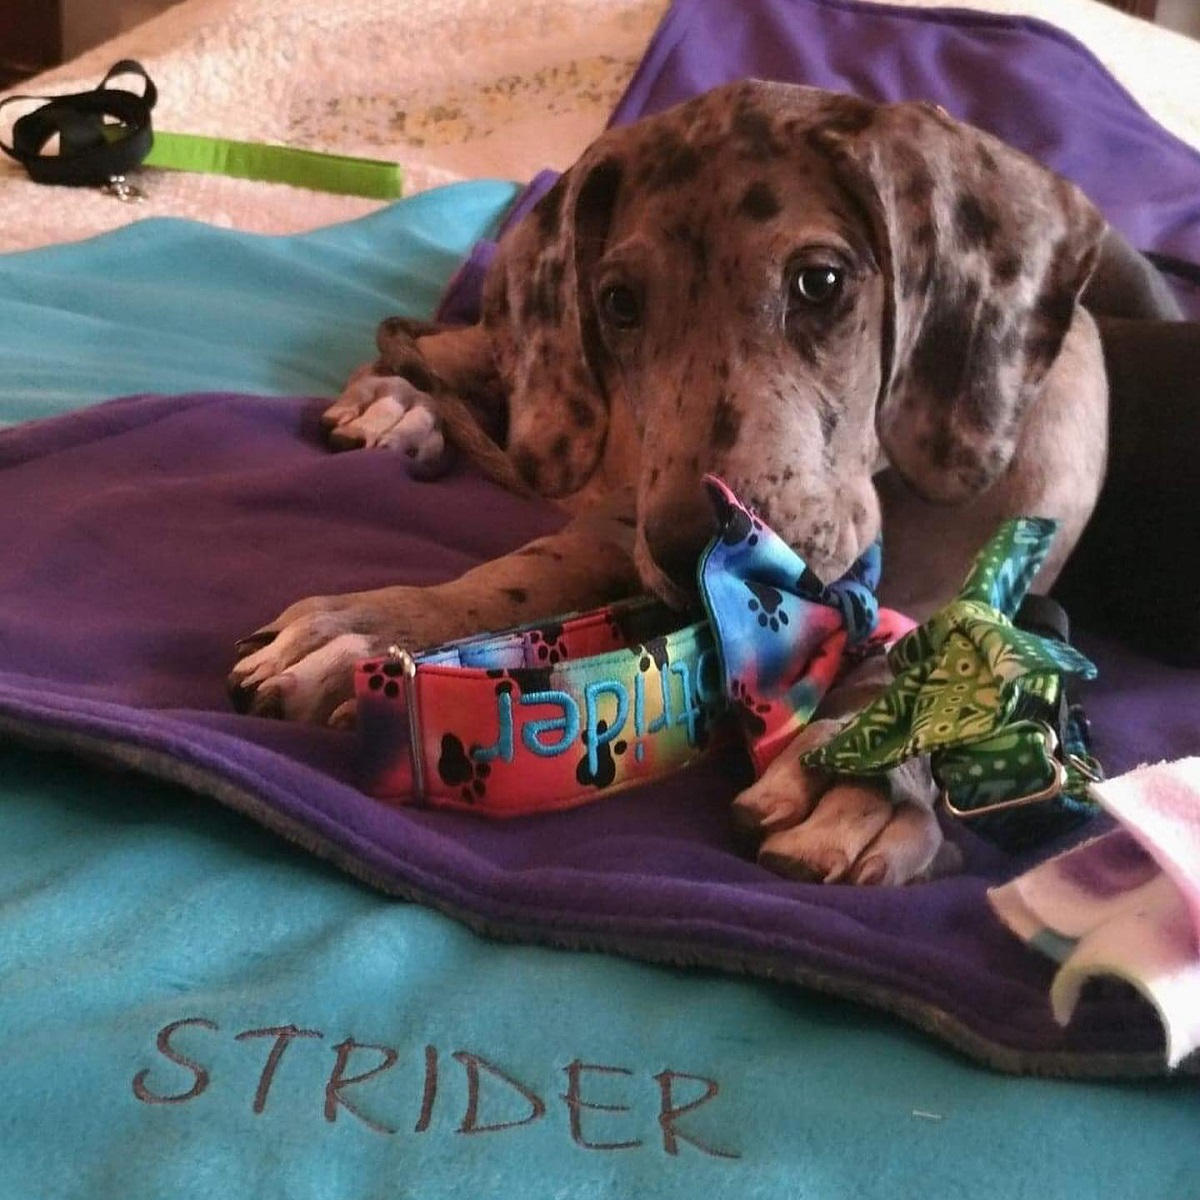 Strider puppy on blanket with collars